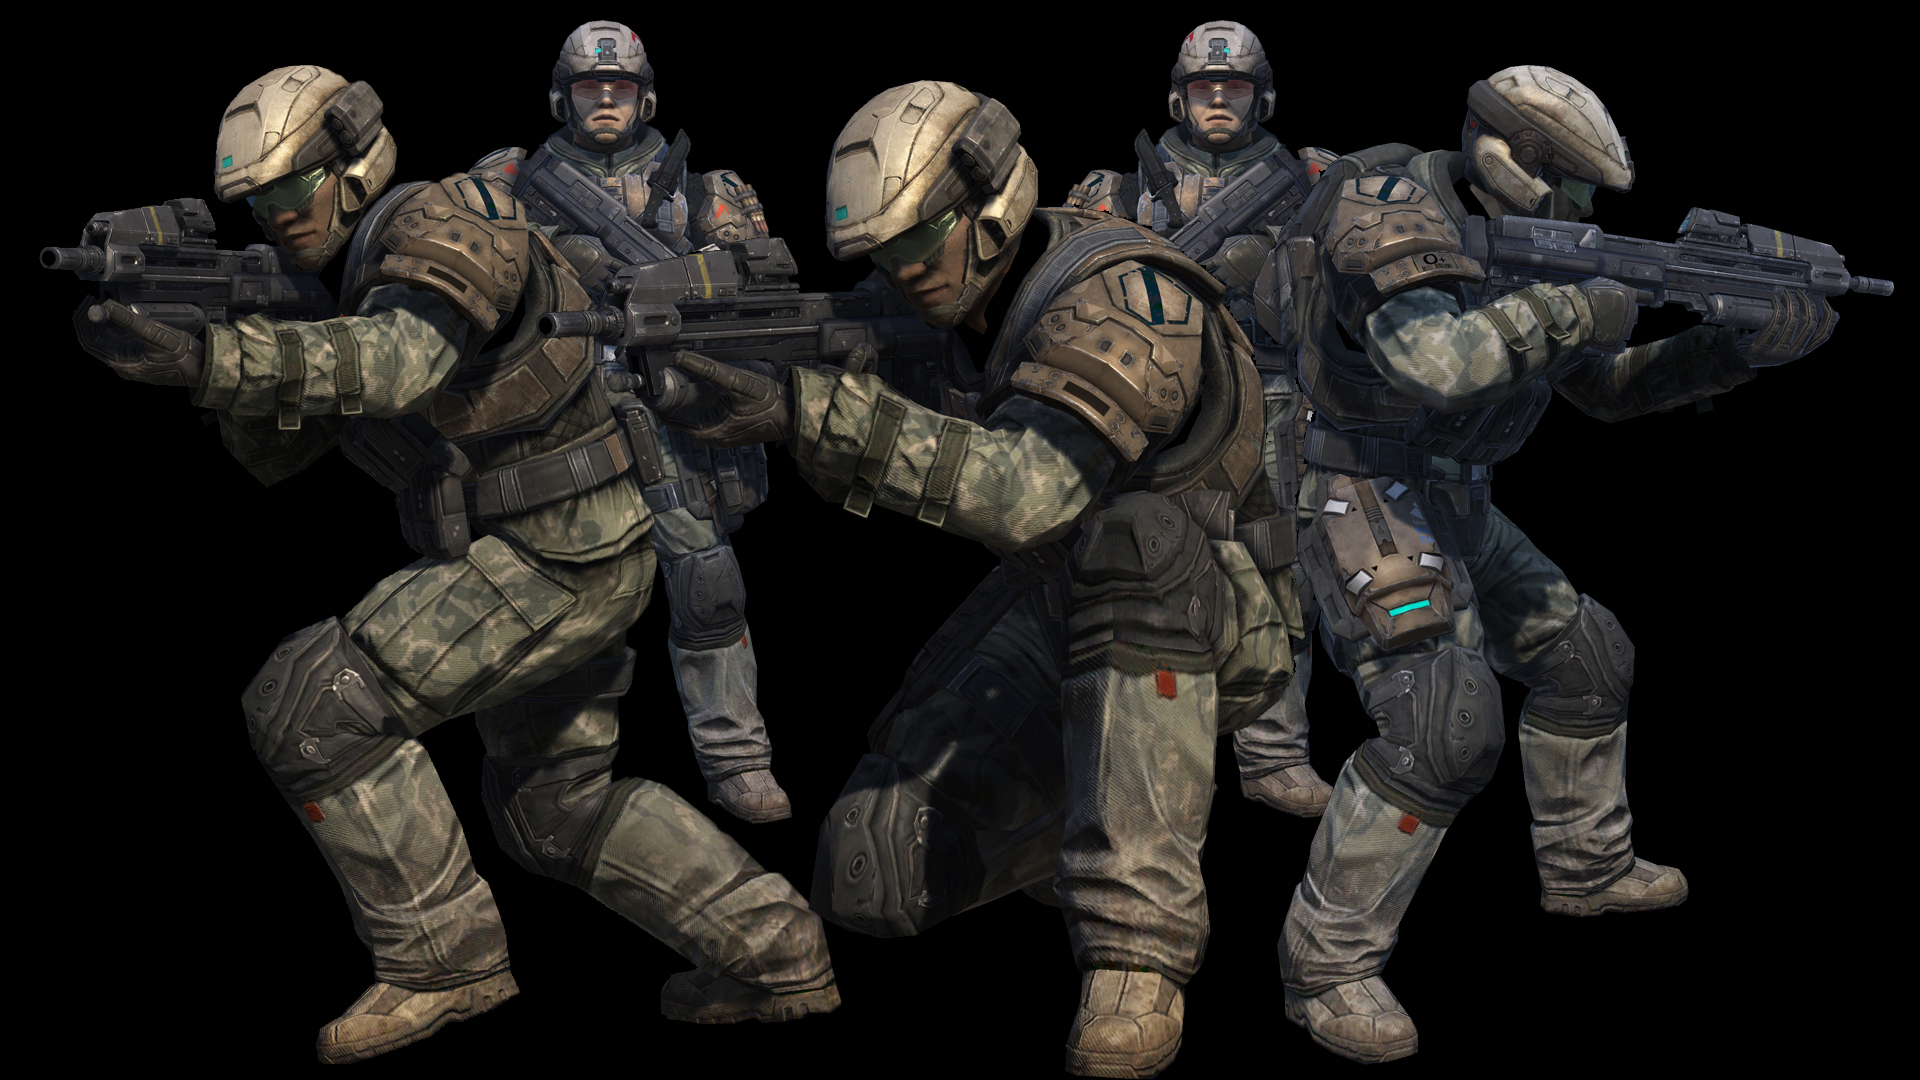 Group of Halo Reach Marine And